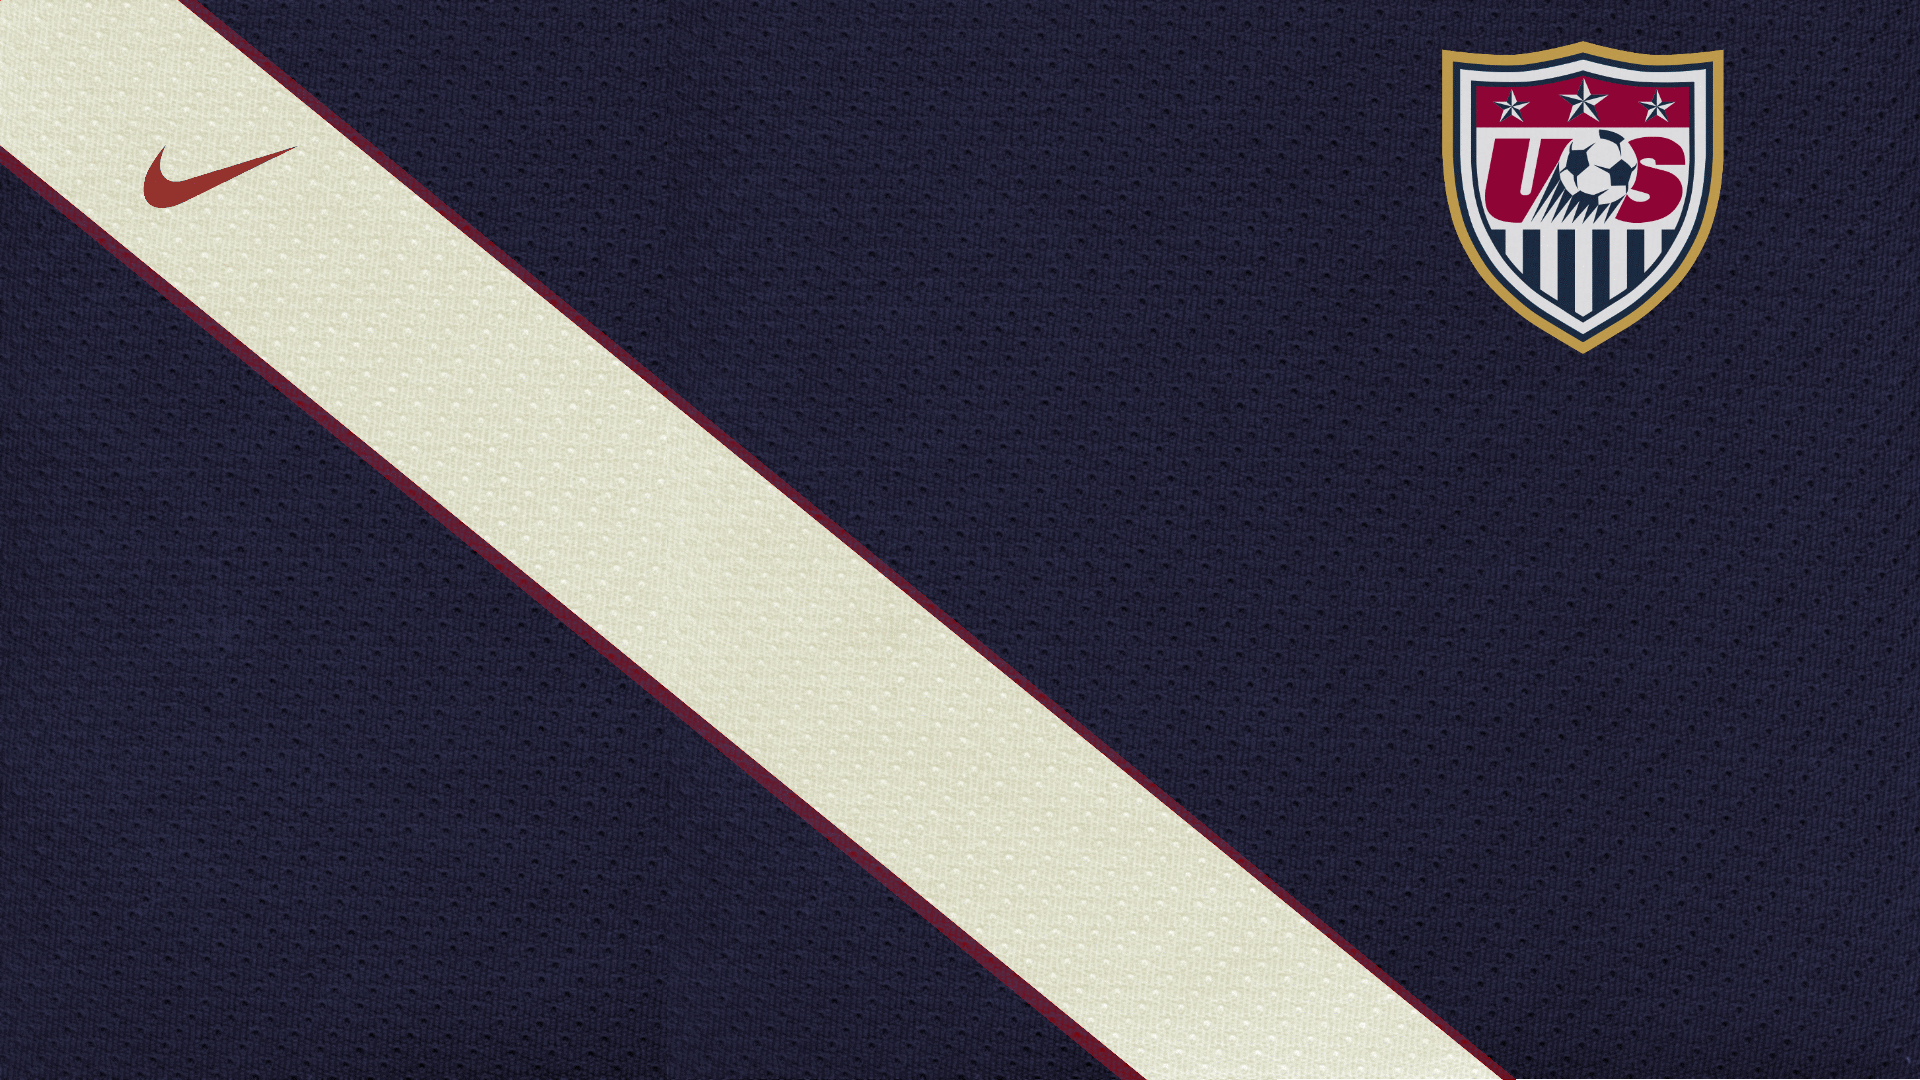 Usa soccer wallpaper 1920x1080 56604 for Usa wallpaper